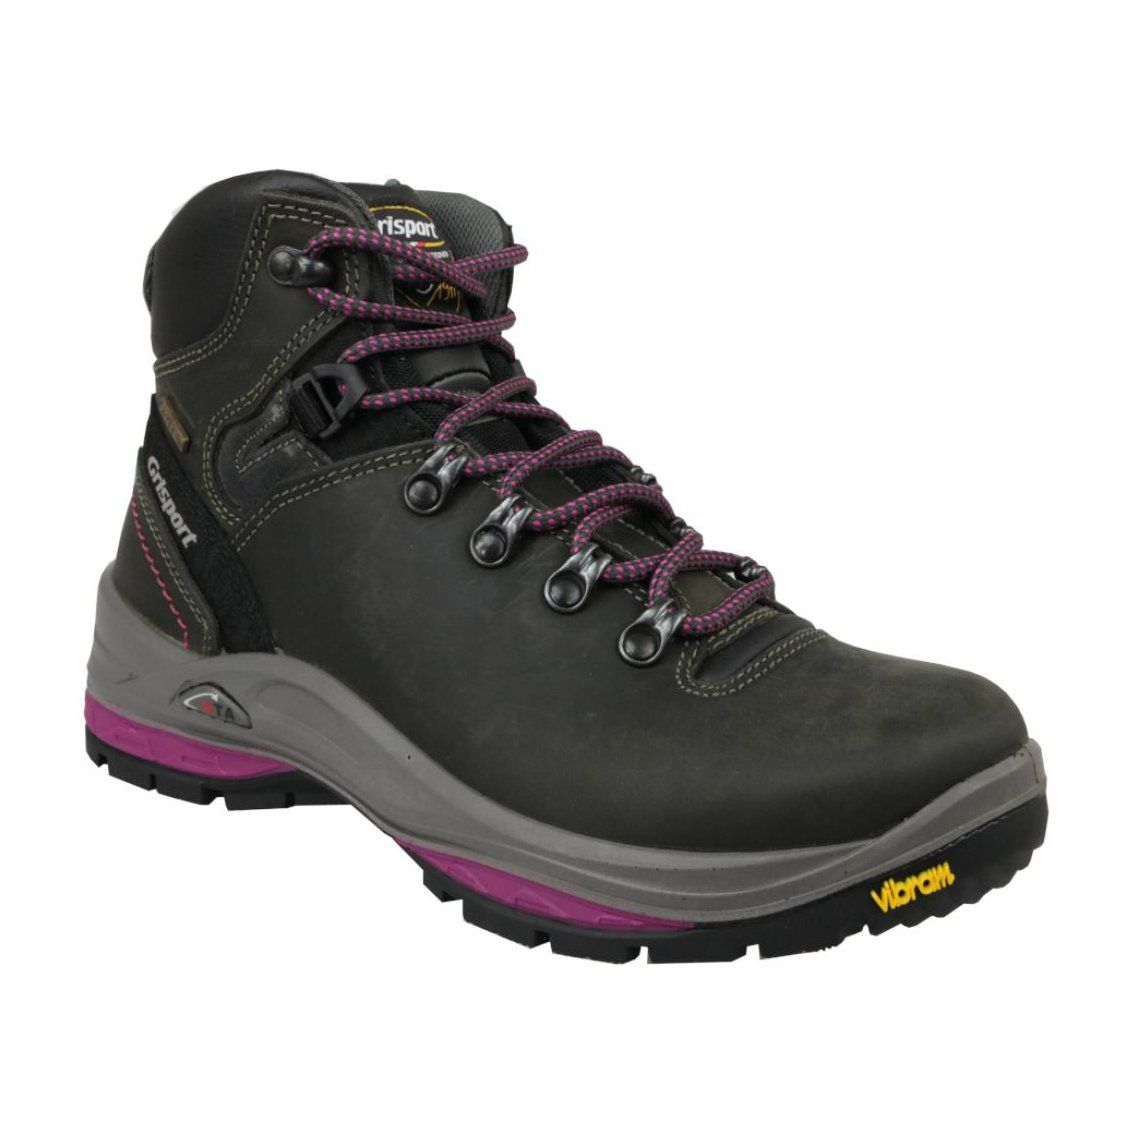 Grisport Grigio W 13503d30g Shoes Brown Hiking Boots Women Hiking Women Sport Shoes Women